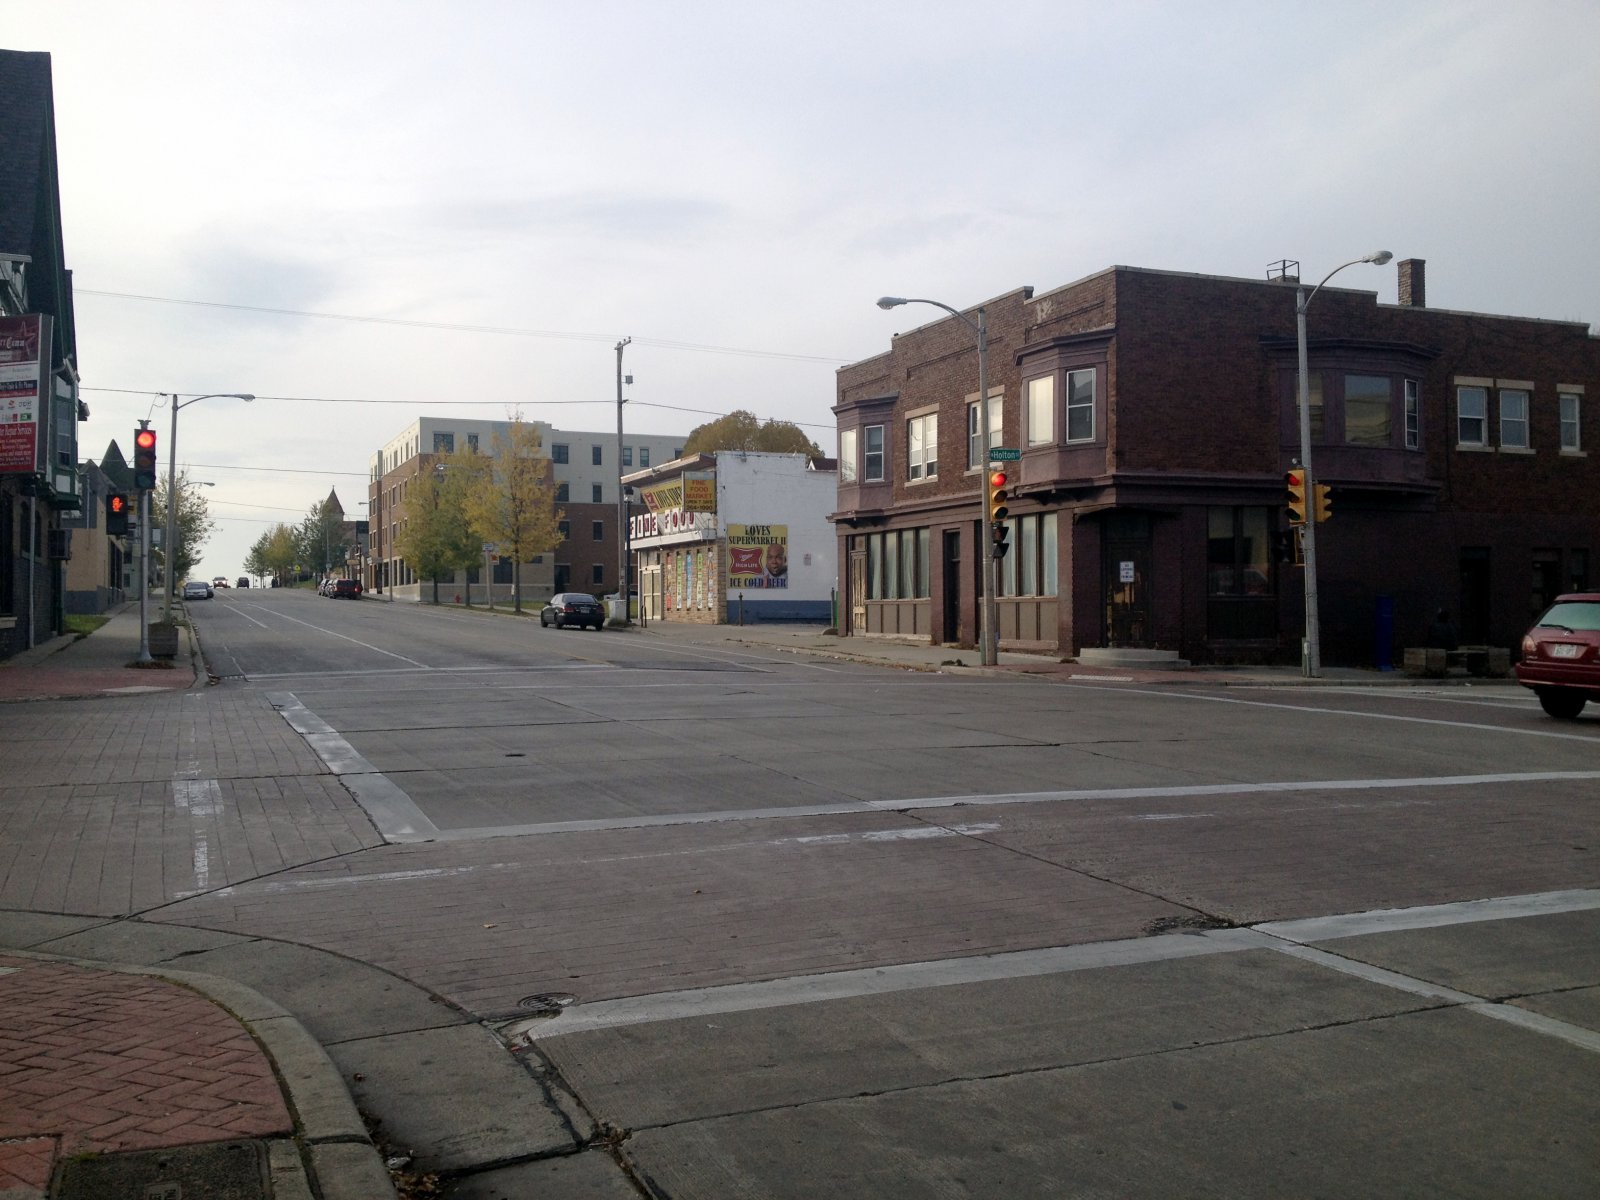 N. Holton St. and E. Center St.